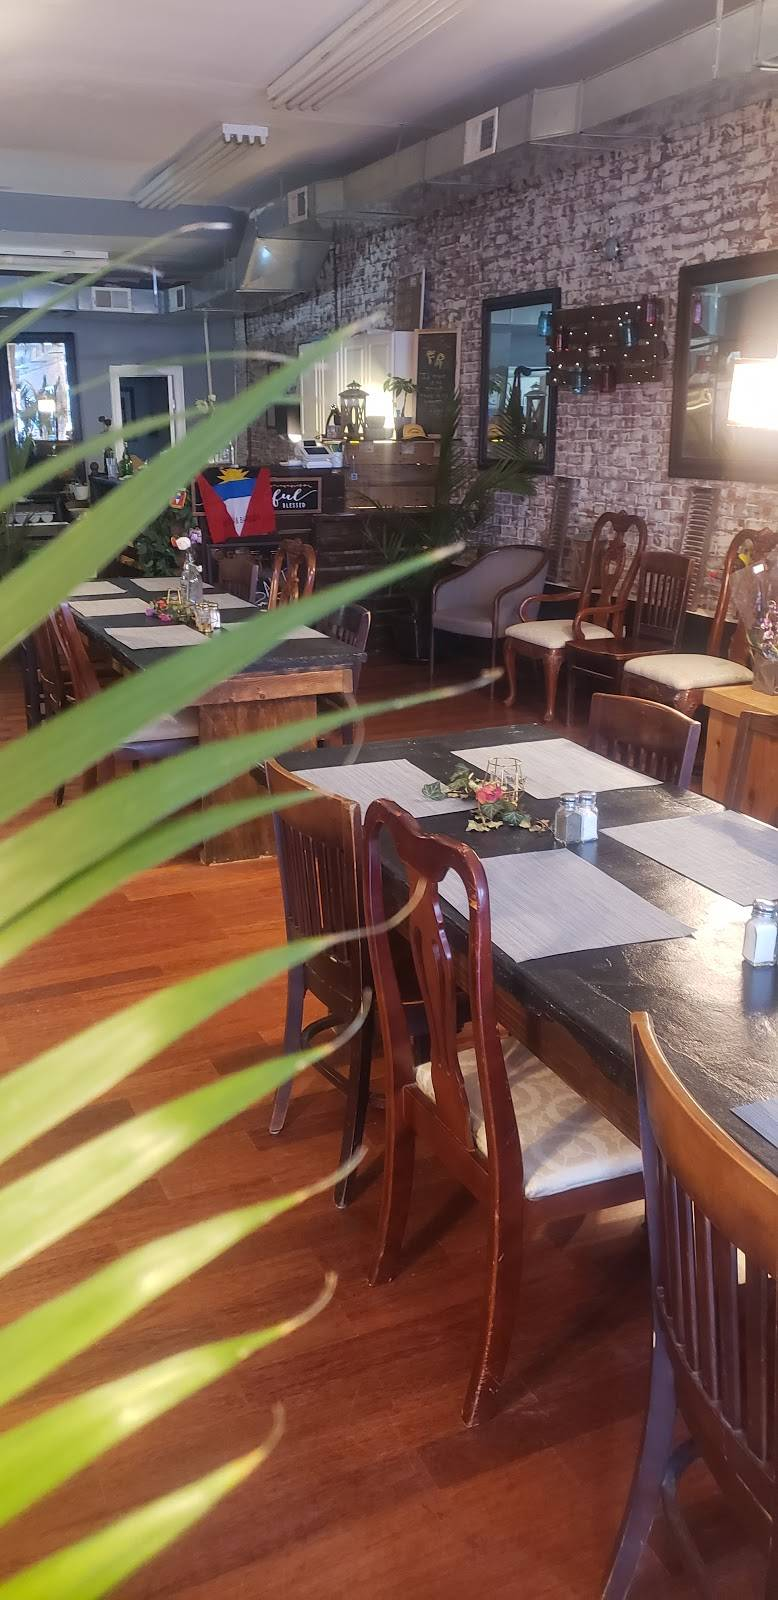 Freetown Road Project Resturaunt | restaurant | 640 Newark Ave, Jersey City, NJ 07306, USA | 2016536533 OR +1 201-653-6533